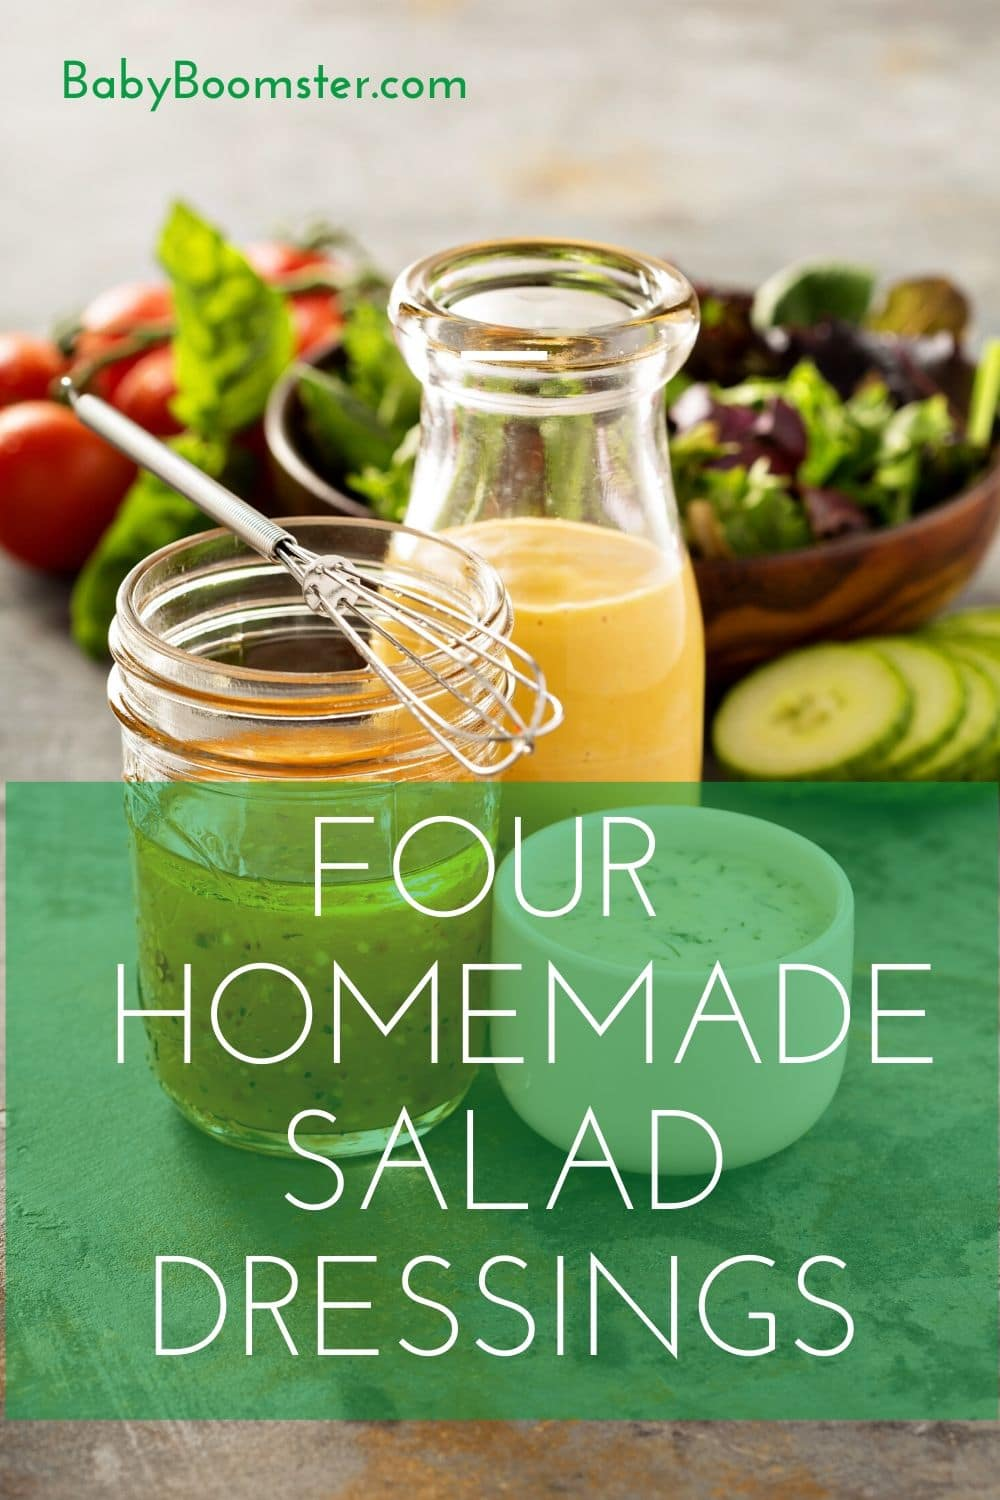 Four homemade salad dressings